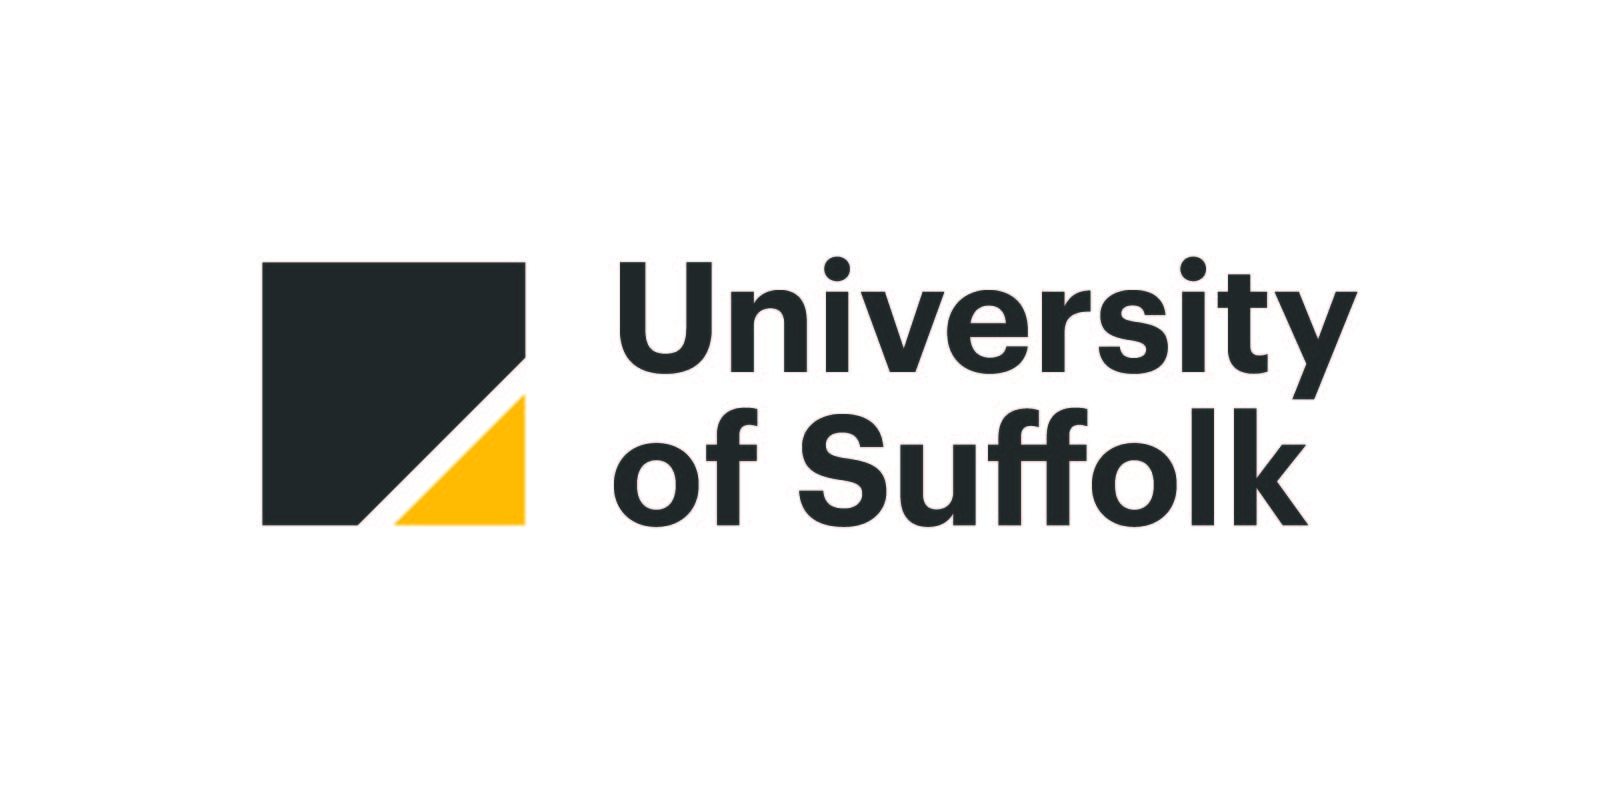 University-of-Suffolk_Logo_CMYK_Mono.jpg?mtime=20160801155820#asset:2956:url